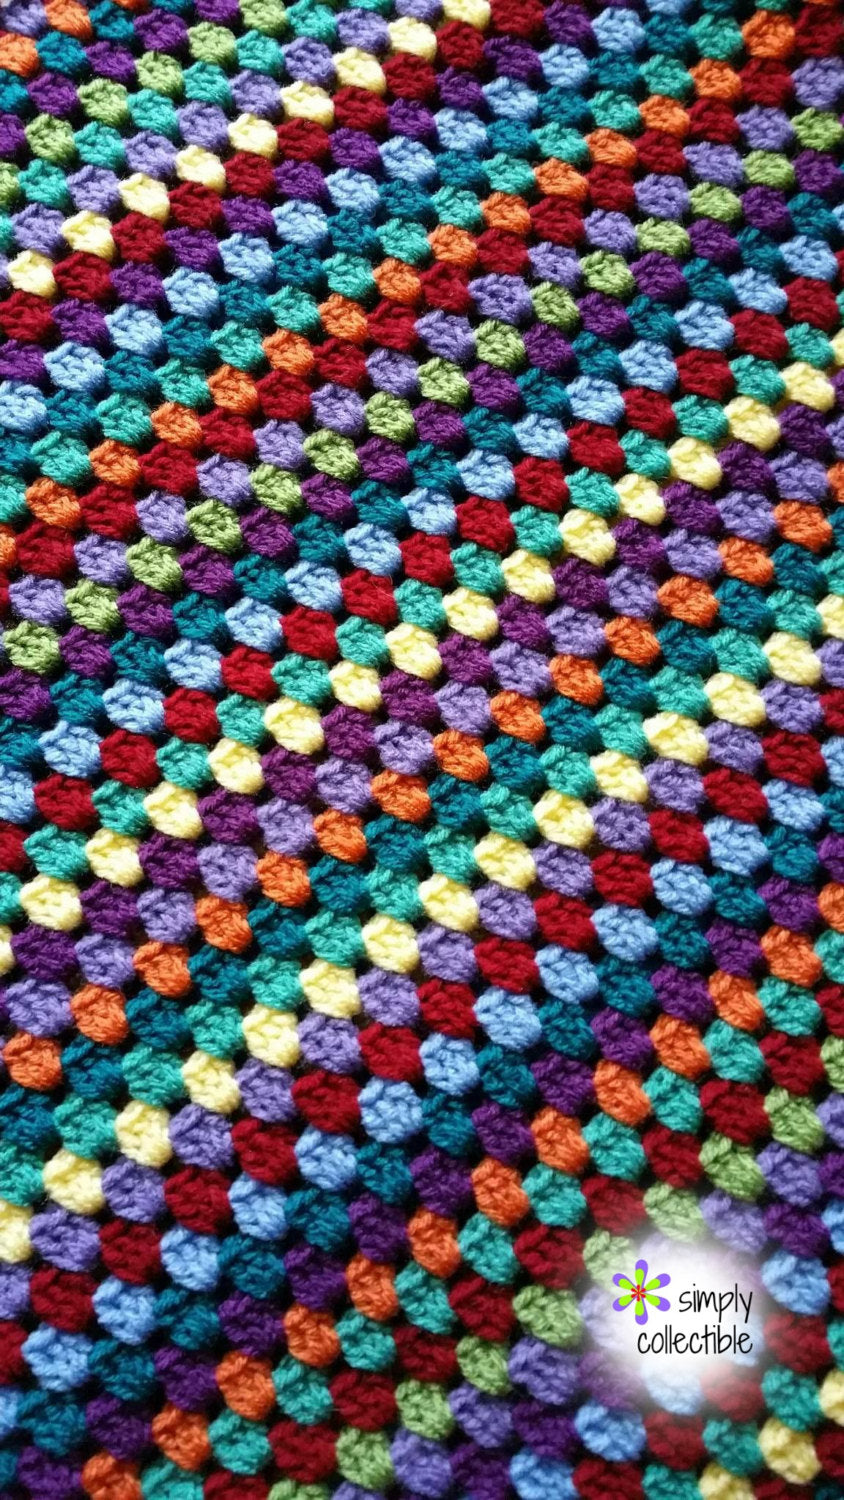 Afghan Blanket Crochet Pattern Maker Goodies